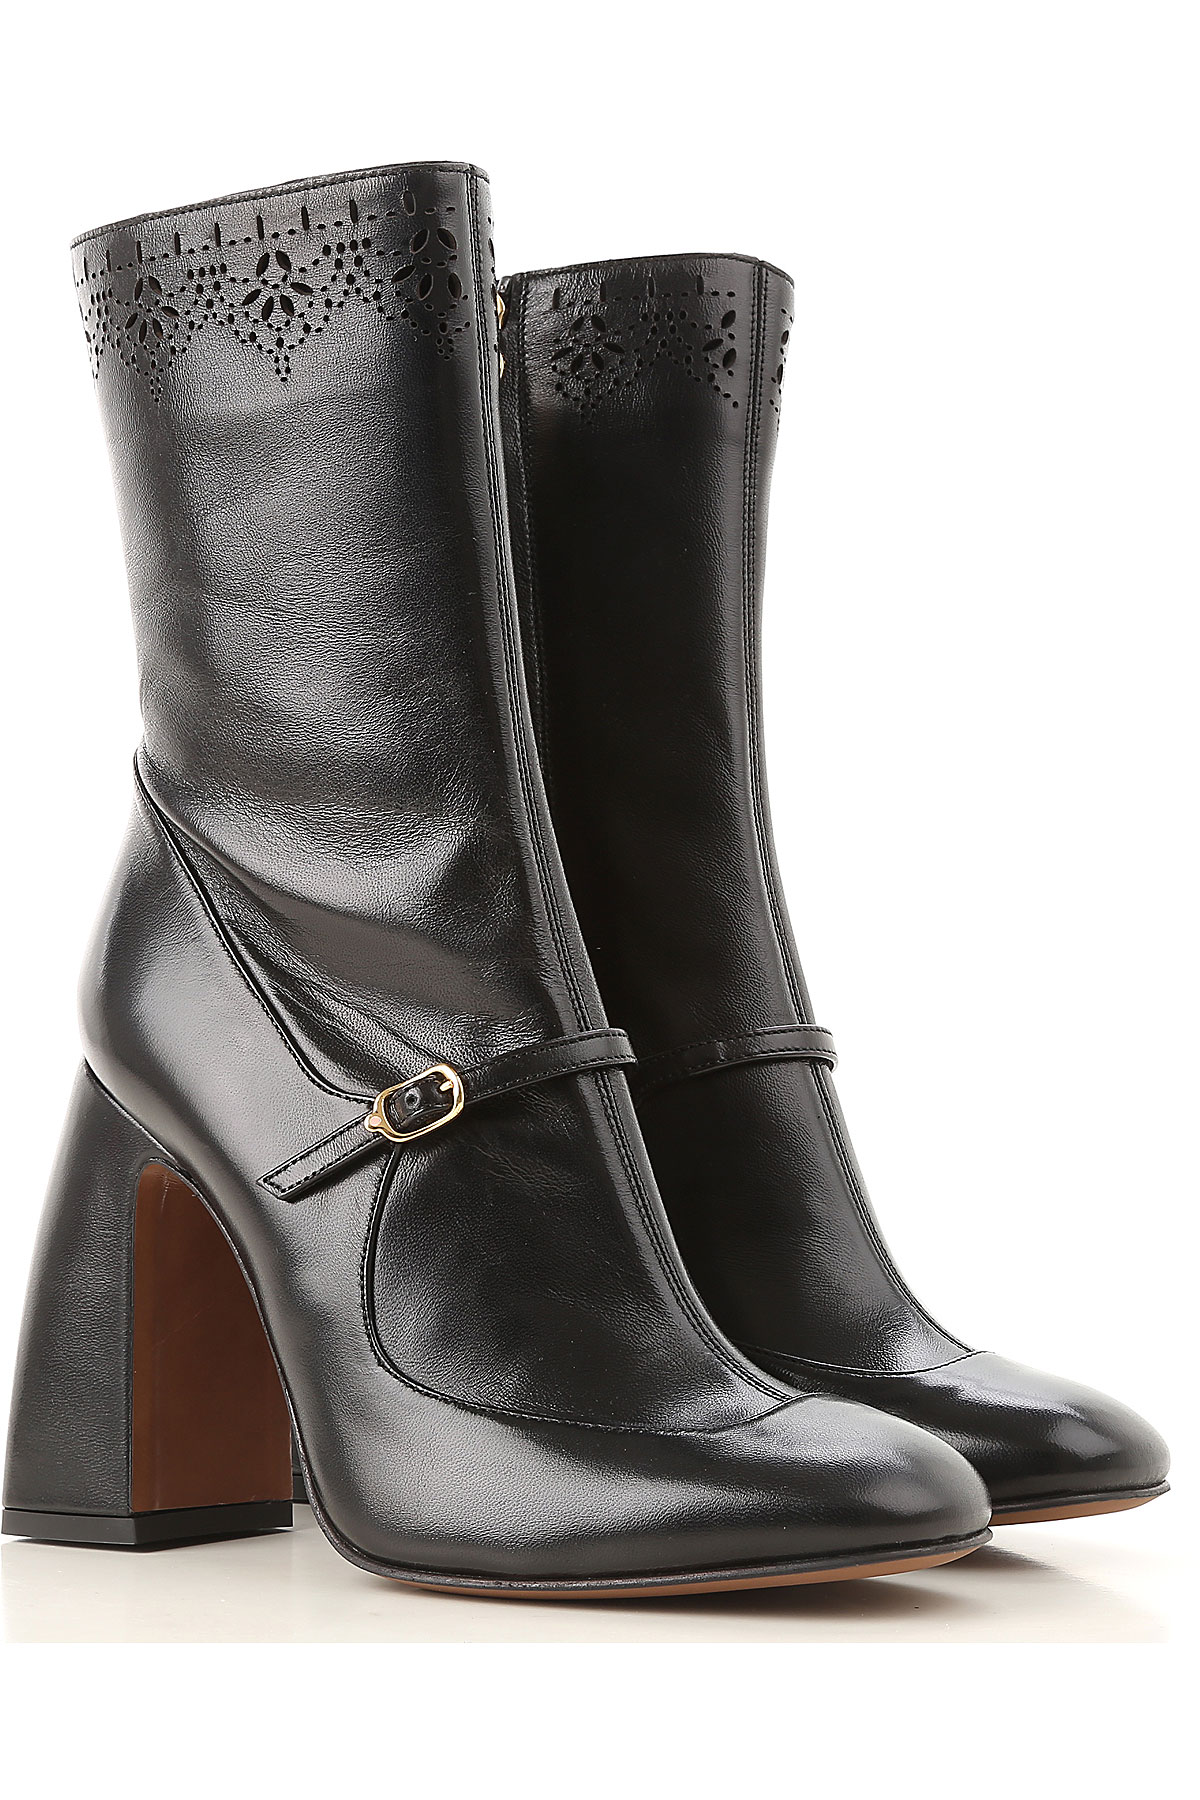 Image of Lautre Chose Boots for Women, Booties, Black, Leather, 2017, 6 7 8 9